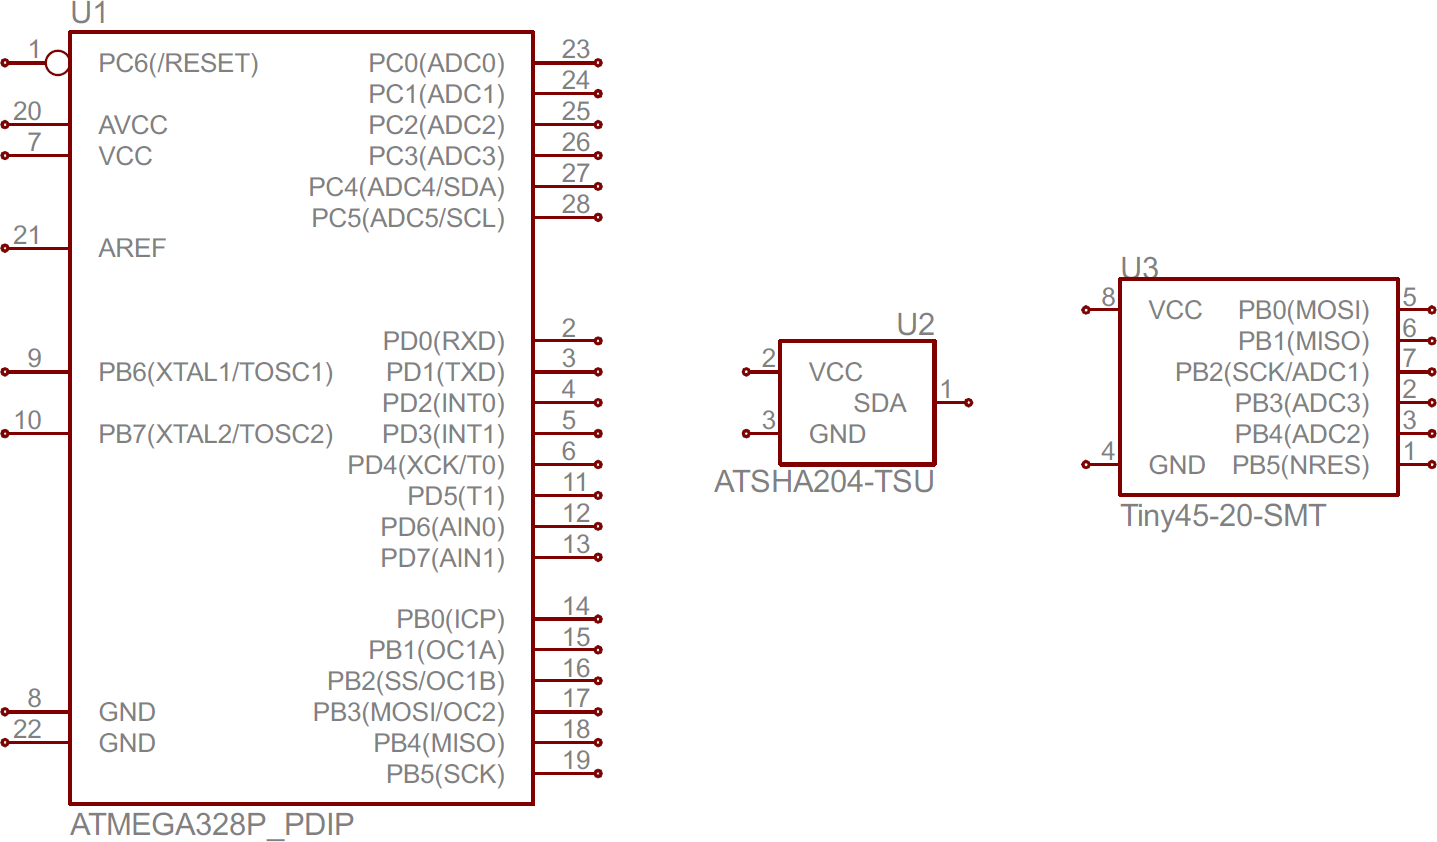 How To Read A Schematic Way Switch Diagram Multiple Lights Between Switches 1 Pdf Atmega328 Atsha204 And Attiny45 Ic Symbols